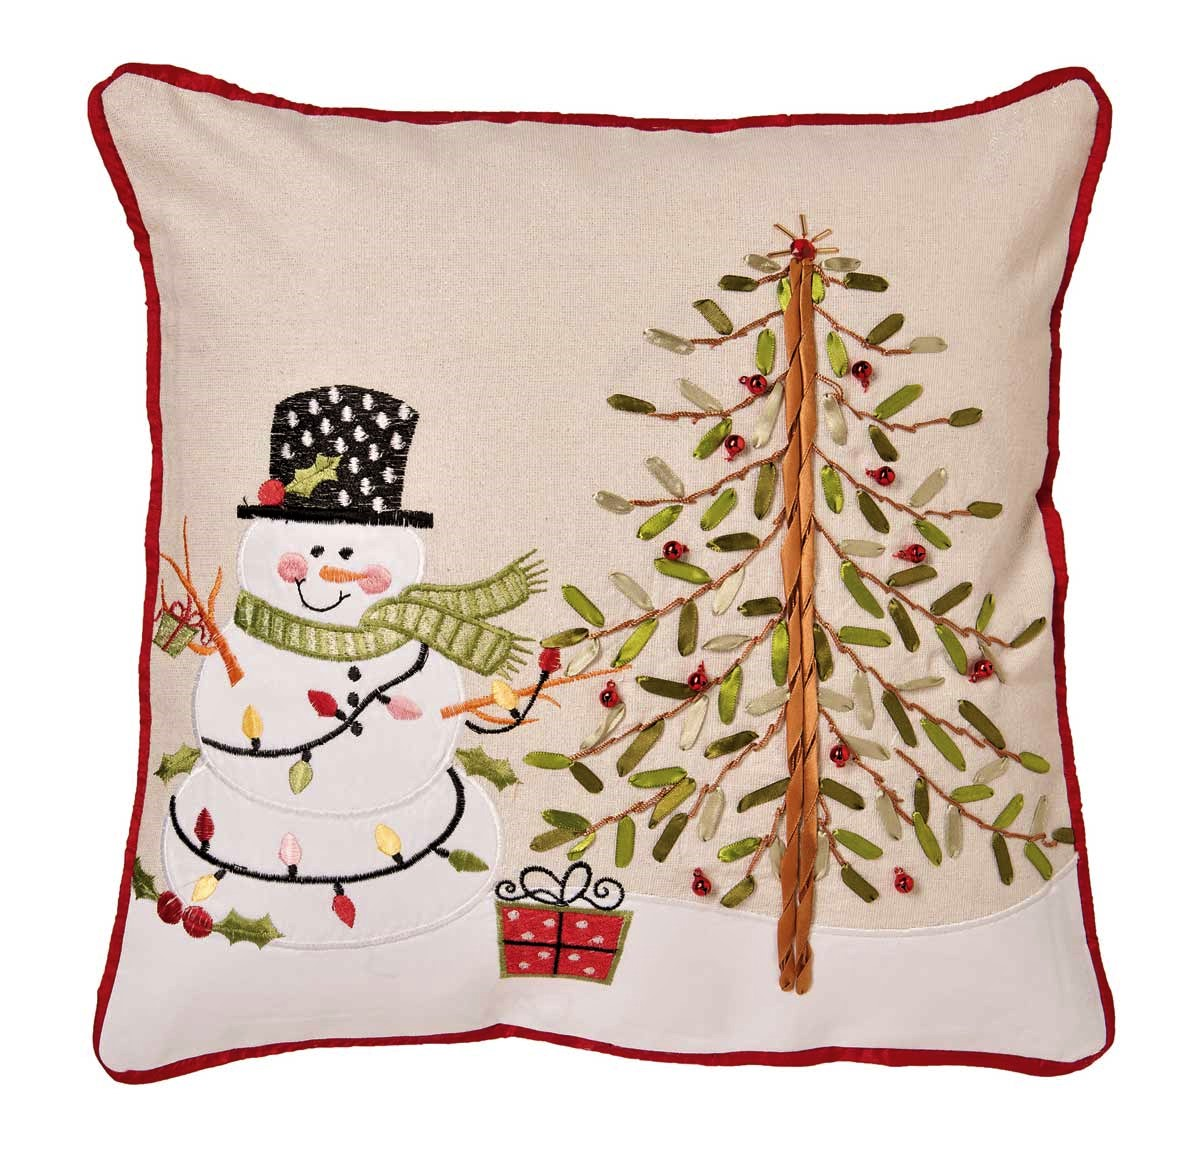 Snowman And Tree Cushion Cover Embroidered Applique Ribbon Work 43x43cm 16x16 Square